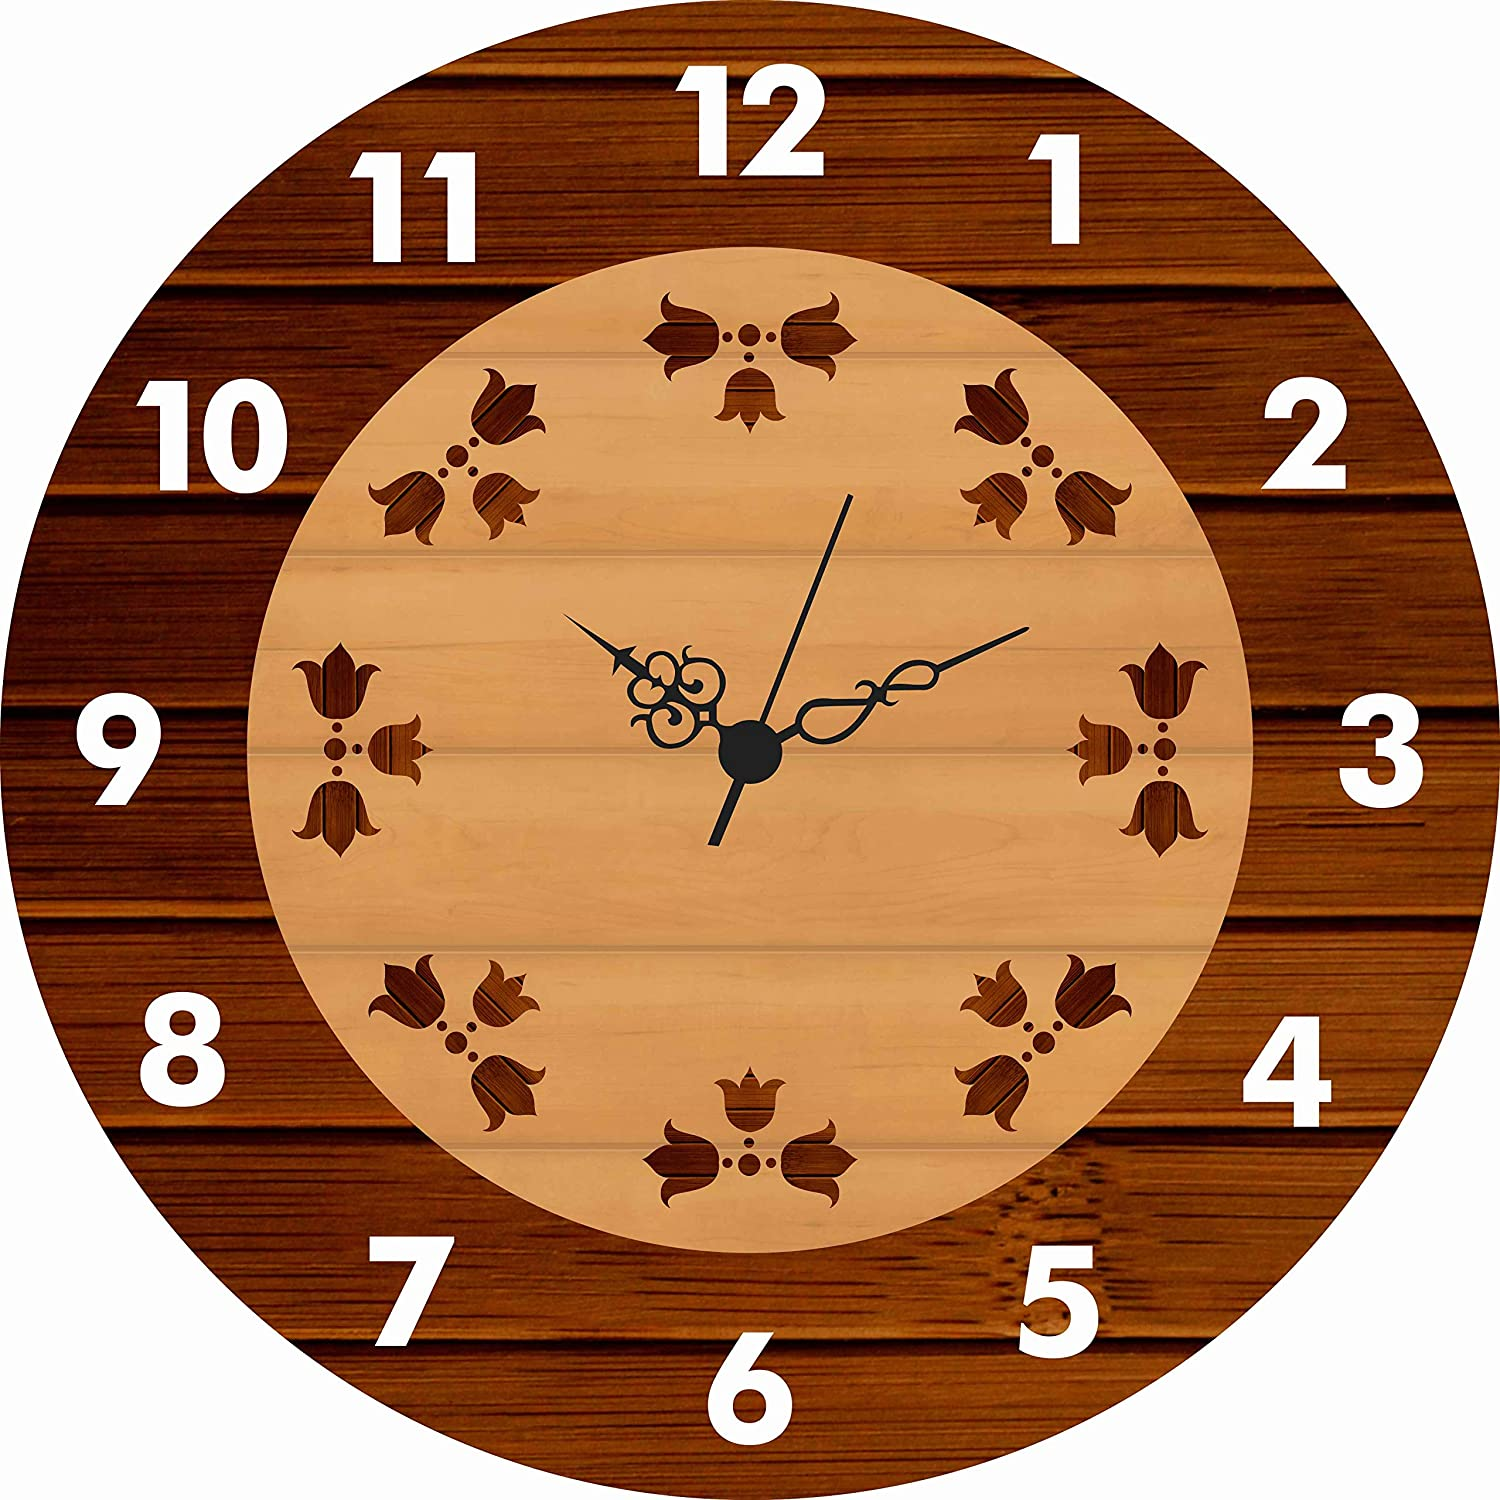 5.)Generic, World Space UV Printed Designer Wall Clock for Home & Office Decor (32 x 32 cm) (Without Glass)(Black Flower)